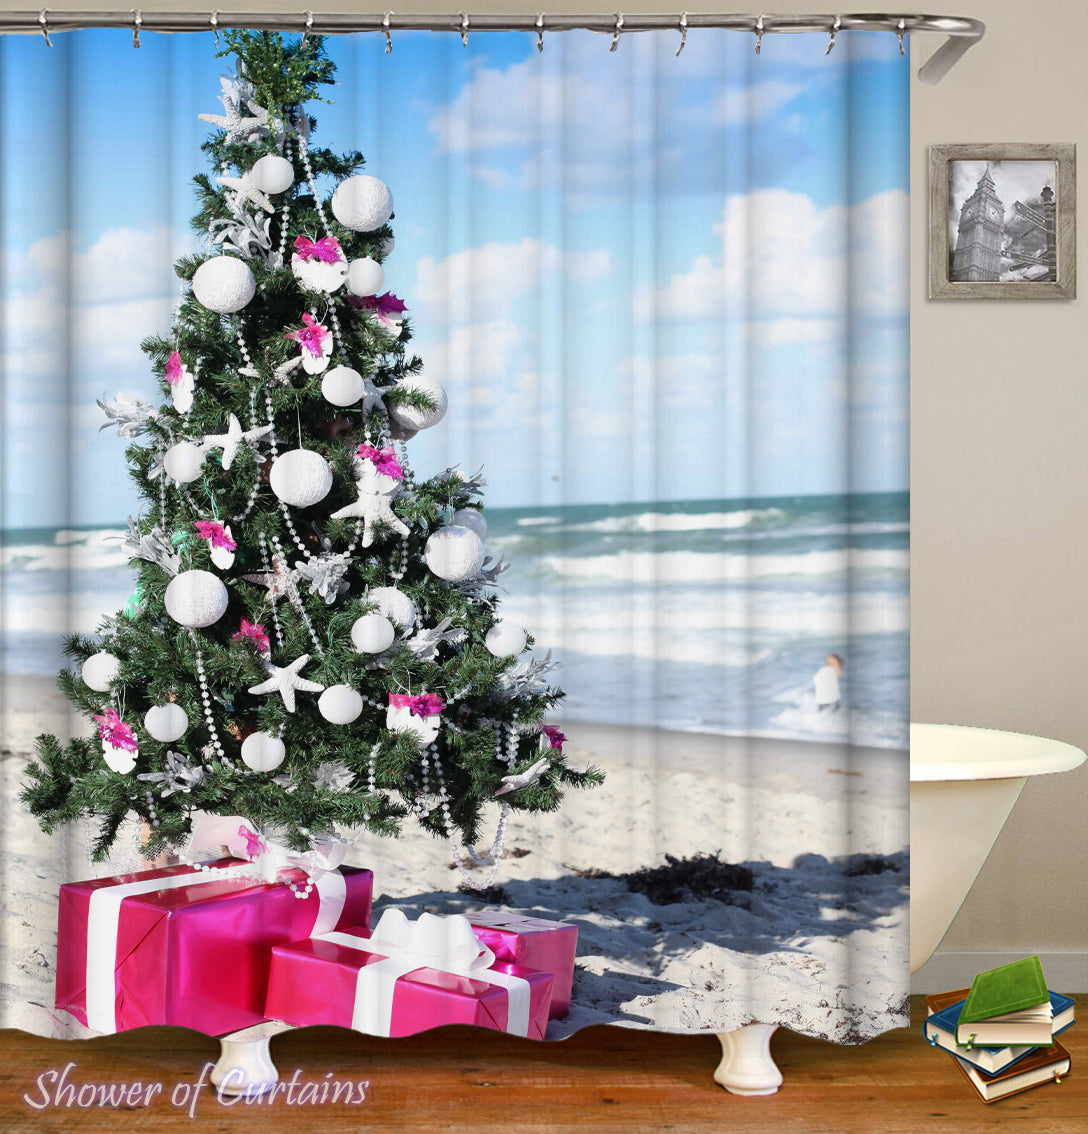 shower curtains design christmas spirit at the beach - Christmas At The Beach